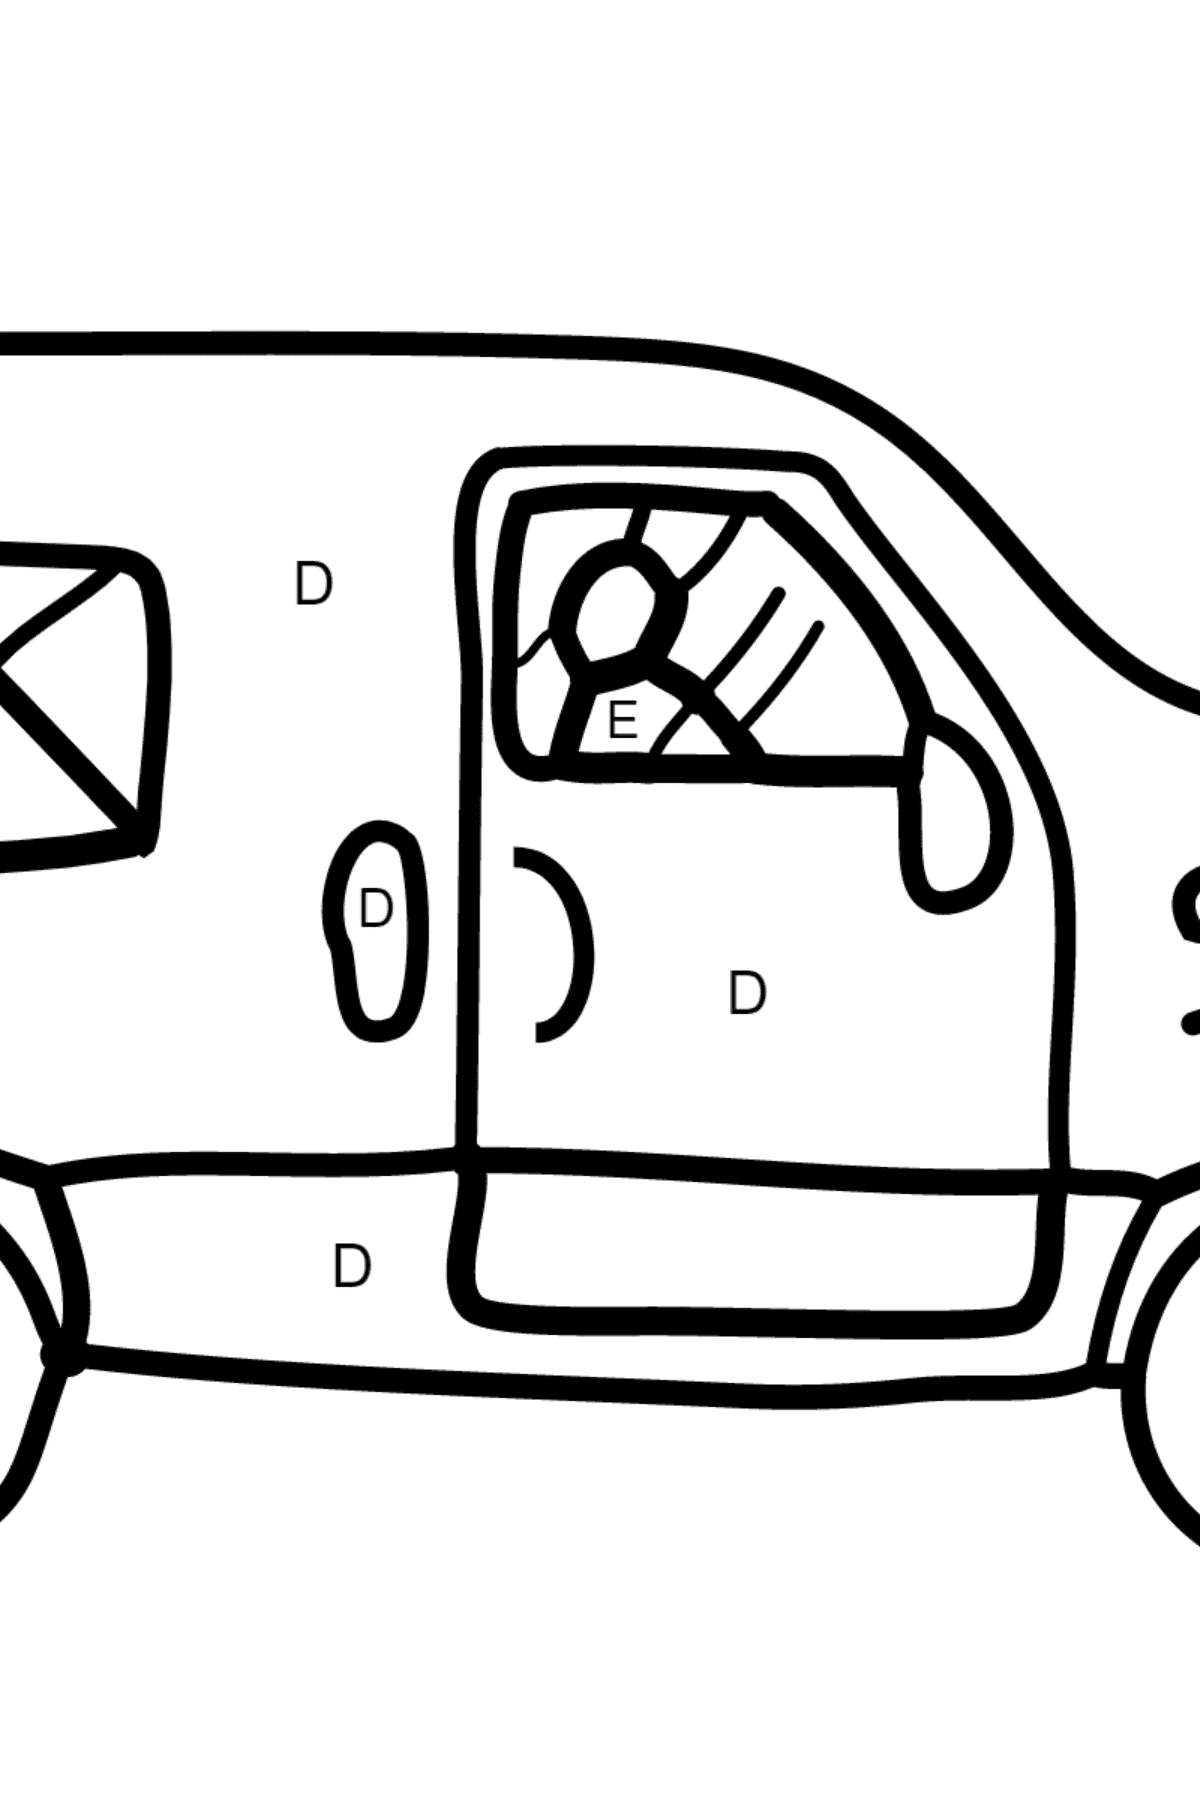 Coloring Page - A Car is Carrying Mail - Coloring by Letters for Children